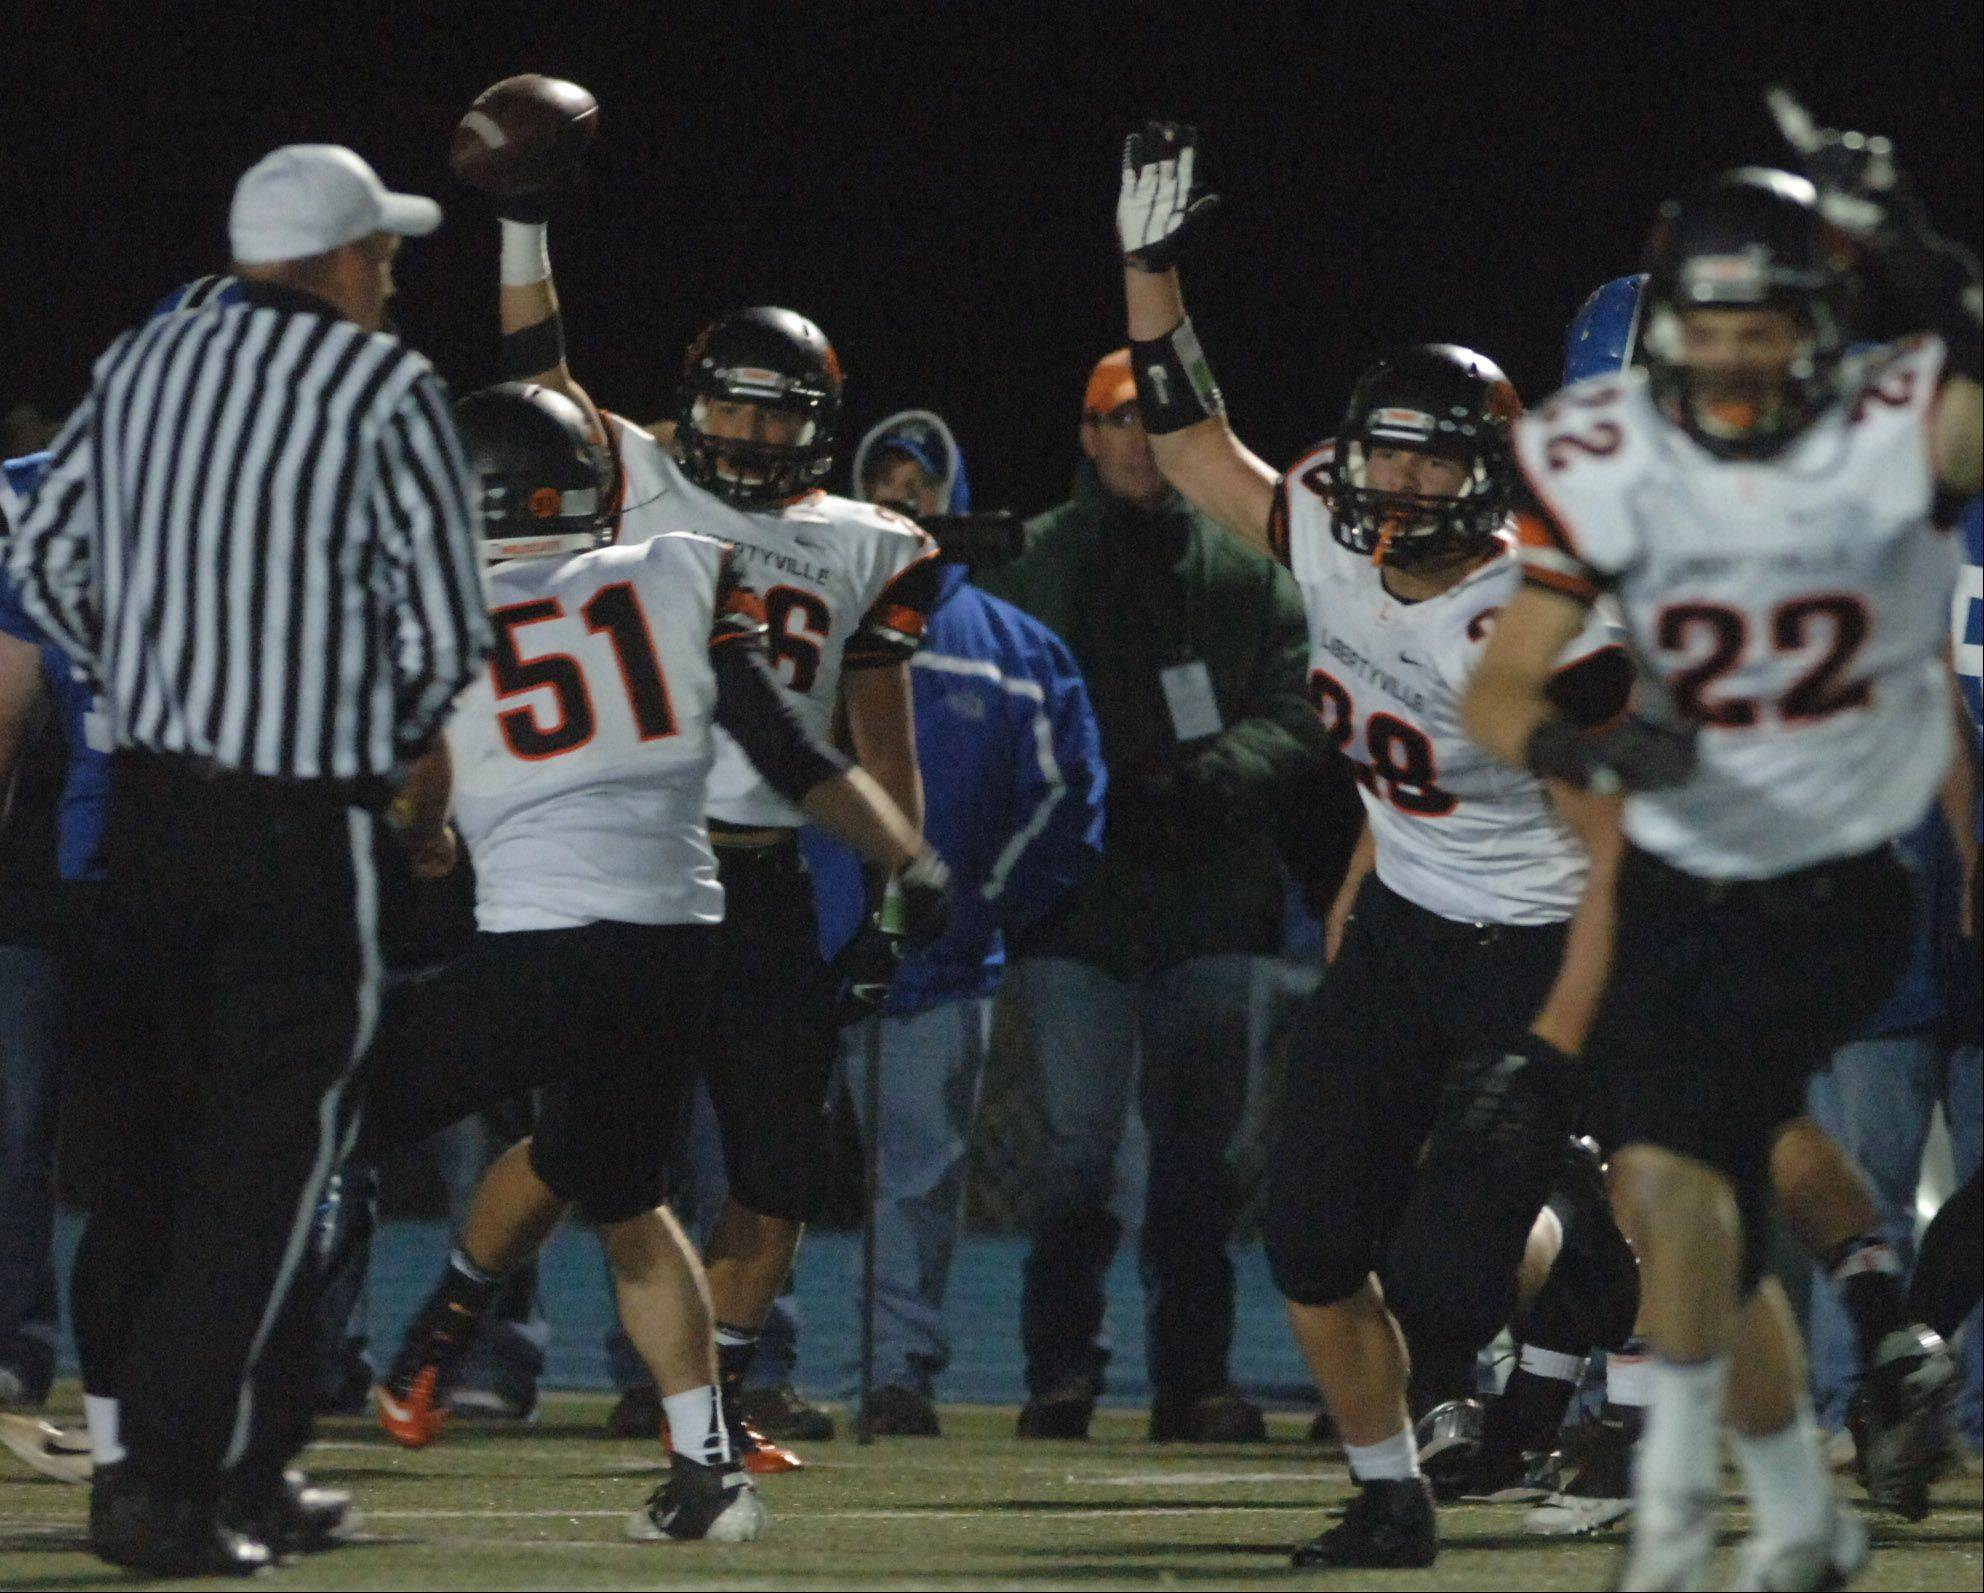 Libertyville players celebrate after coming up with a fumble recovery in the second half of a 3-0 triumph Friday at Lake Zurich.